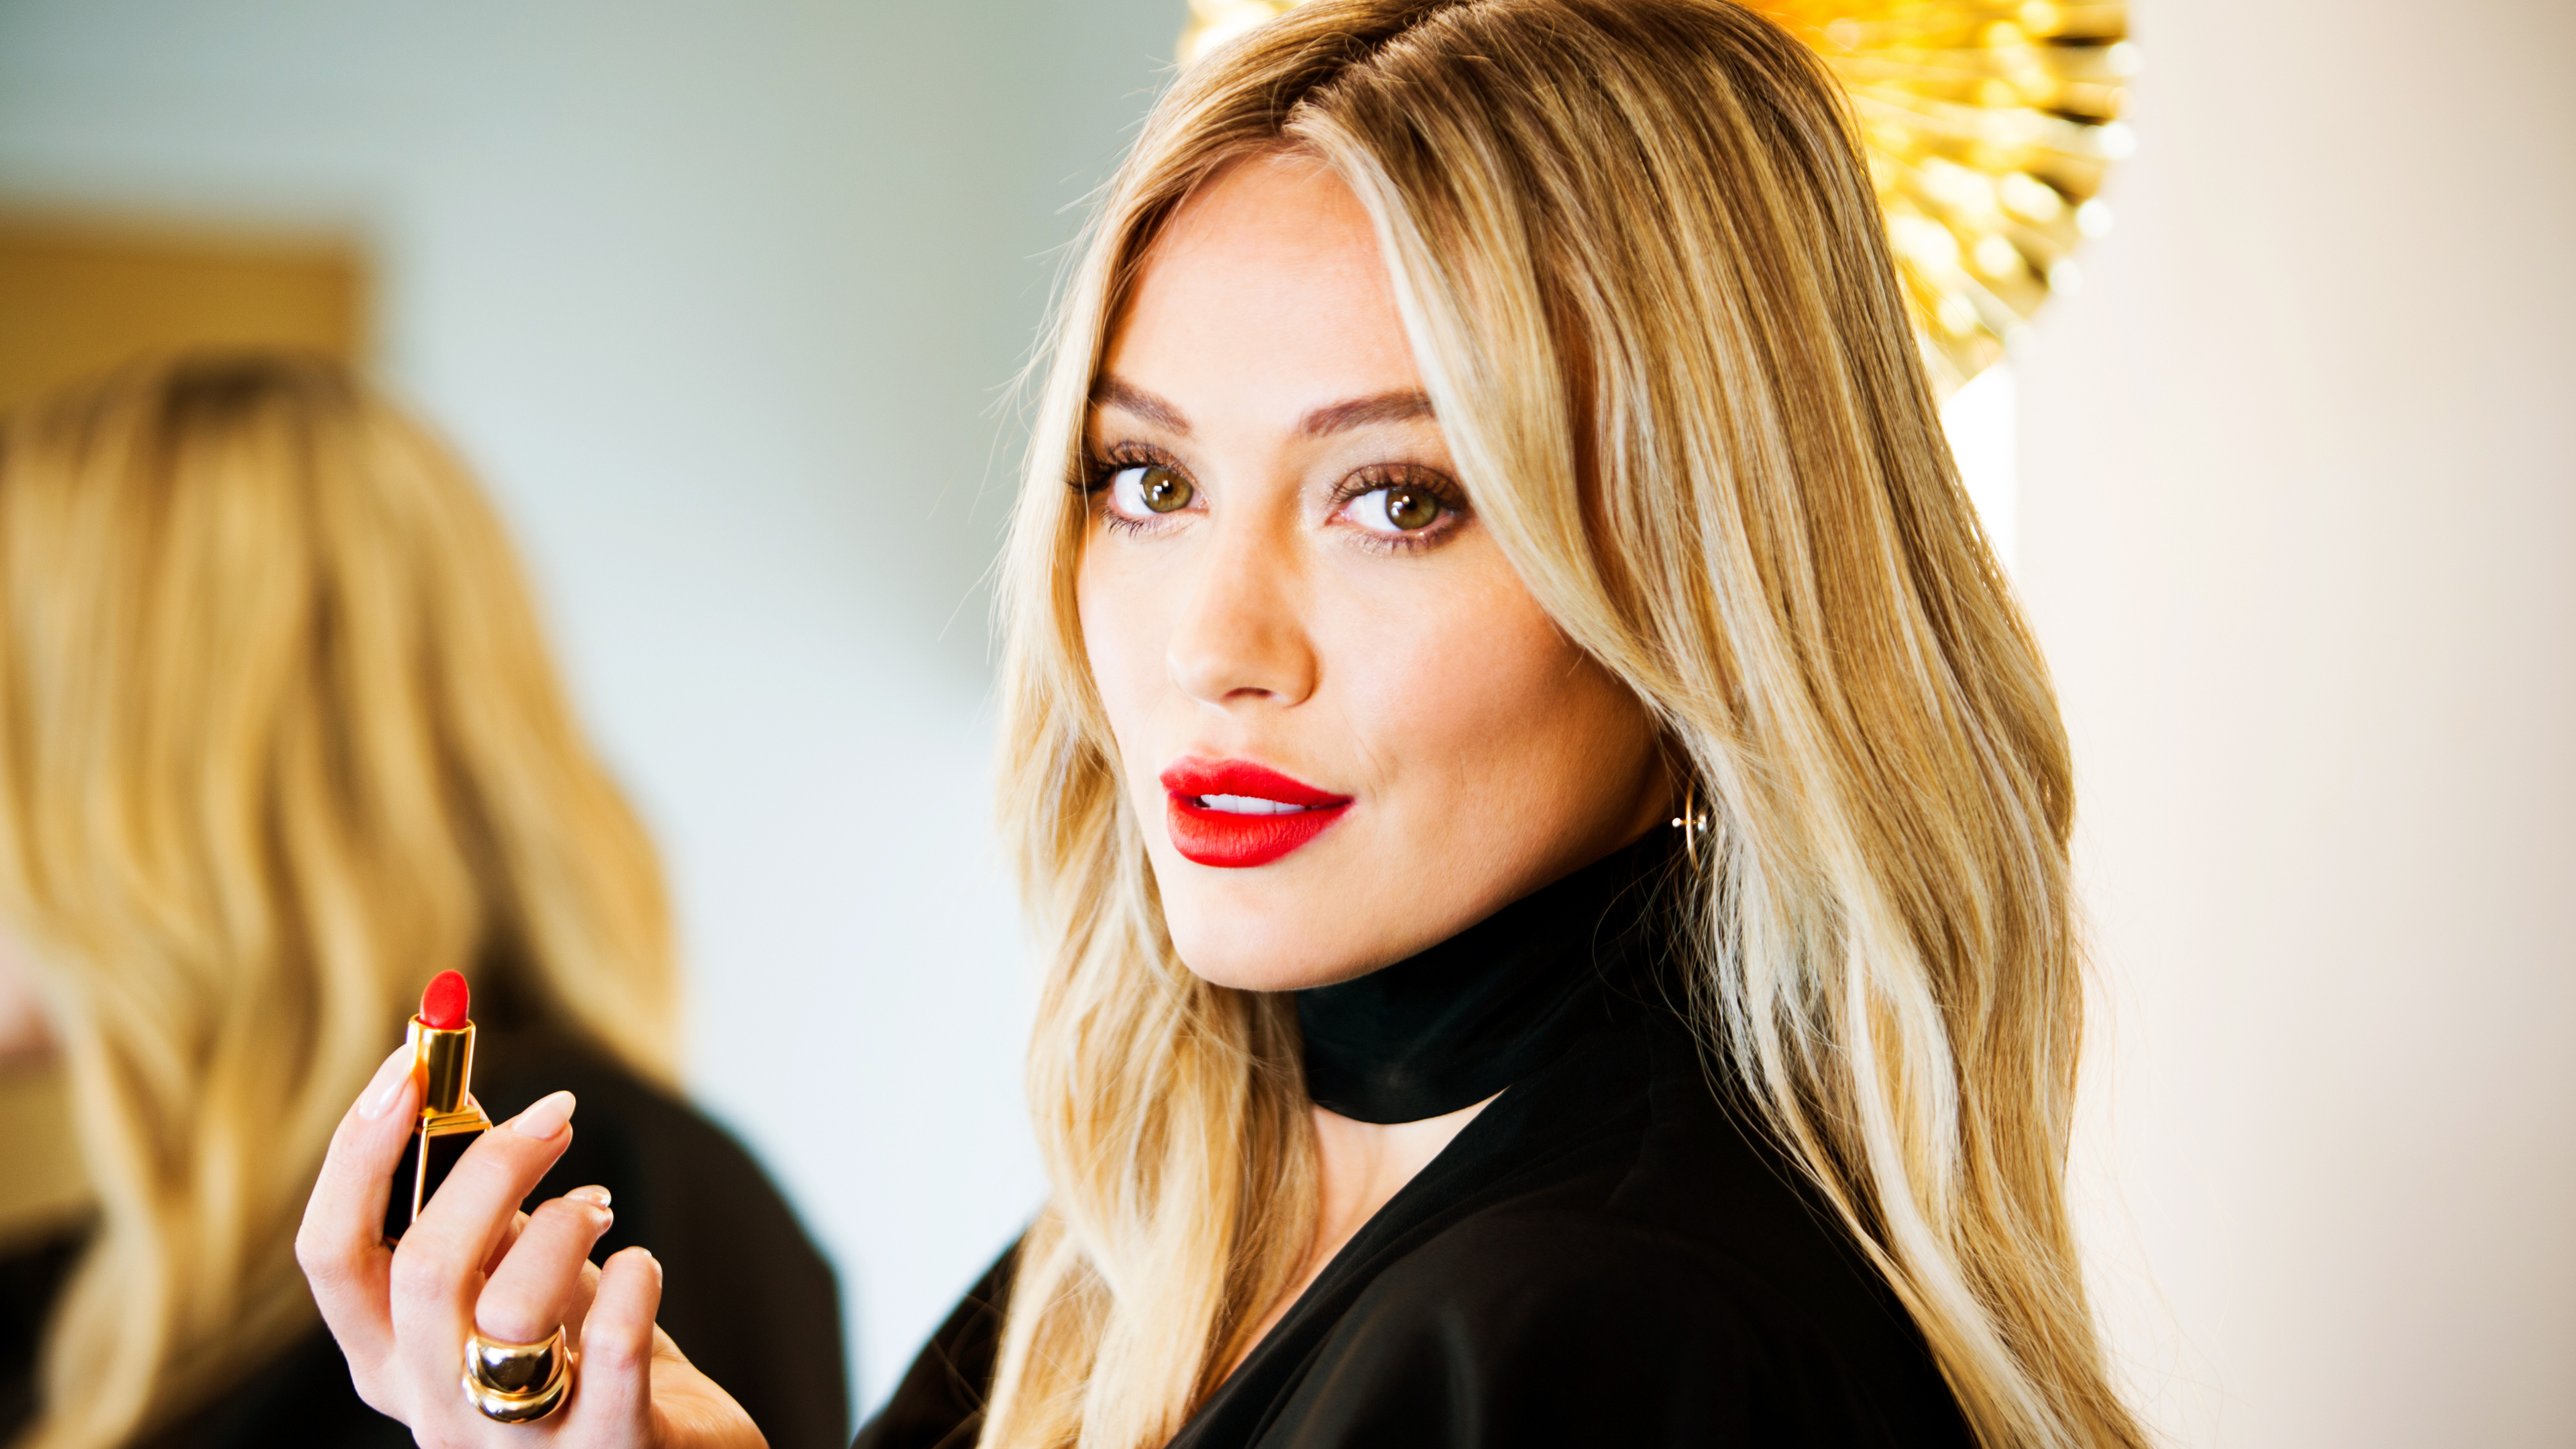 hilary duff 4k 2019 1546276989 - Hilary Duff 4k 2019 - hilary duff wallpapers, hd-wallpapers, girls wallpapers, celebrities wallpapers, 4k-wallpapers